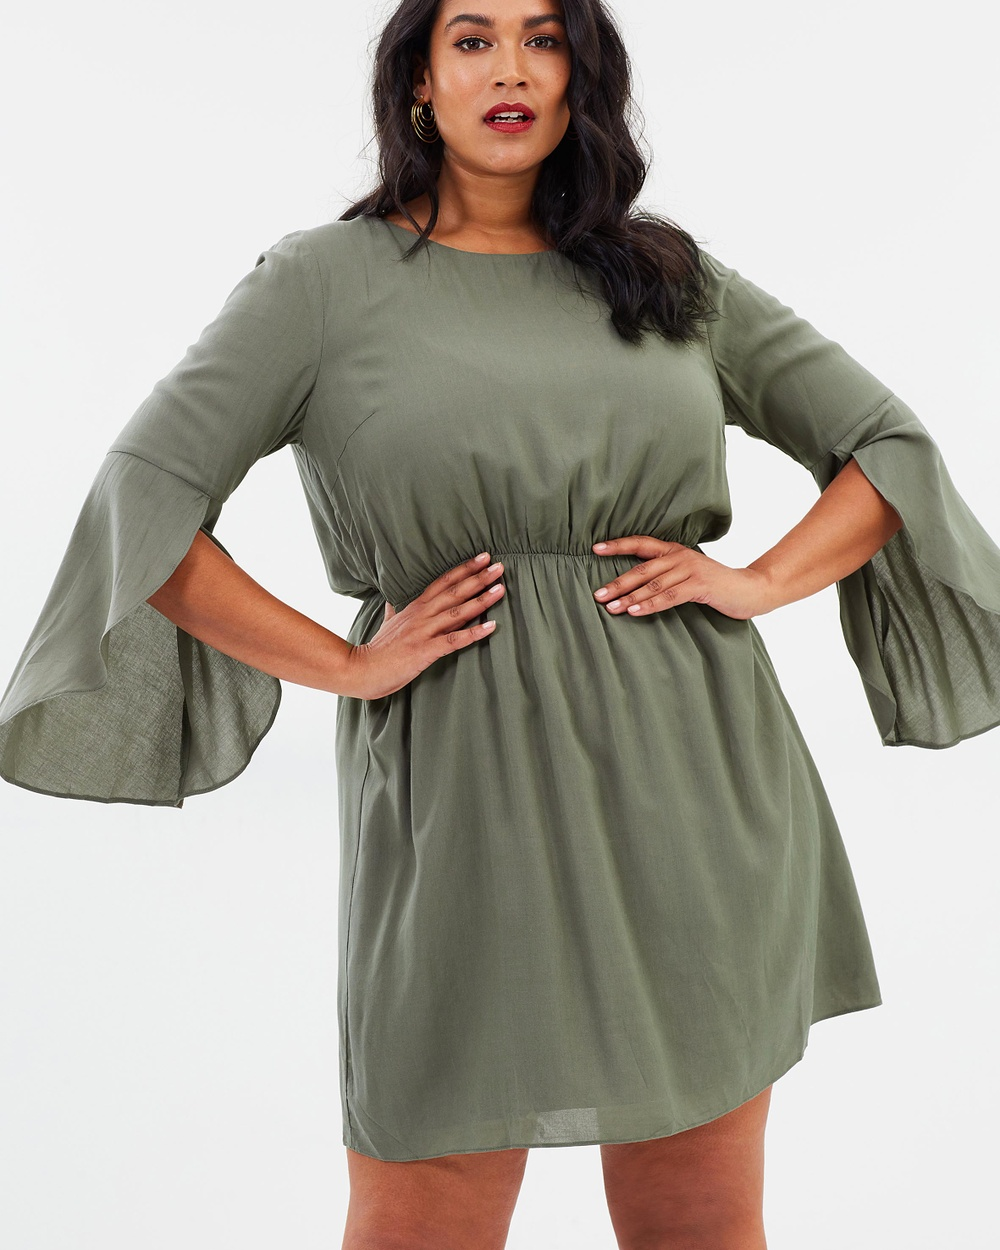 Atmos & Here Curvy ICONIC EXCLUSIVE Idina Fit And Flare Dress Dresses Khaki ICONIC EXCLUSIVE Idina Fit And Flare Dress